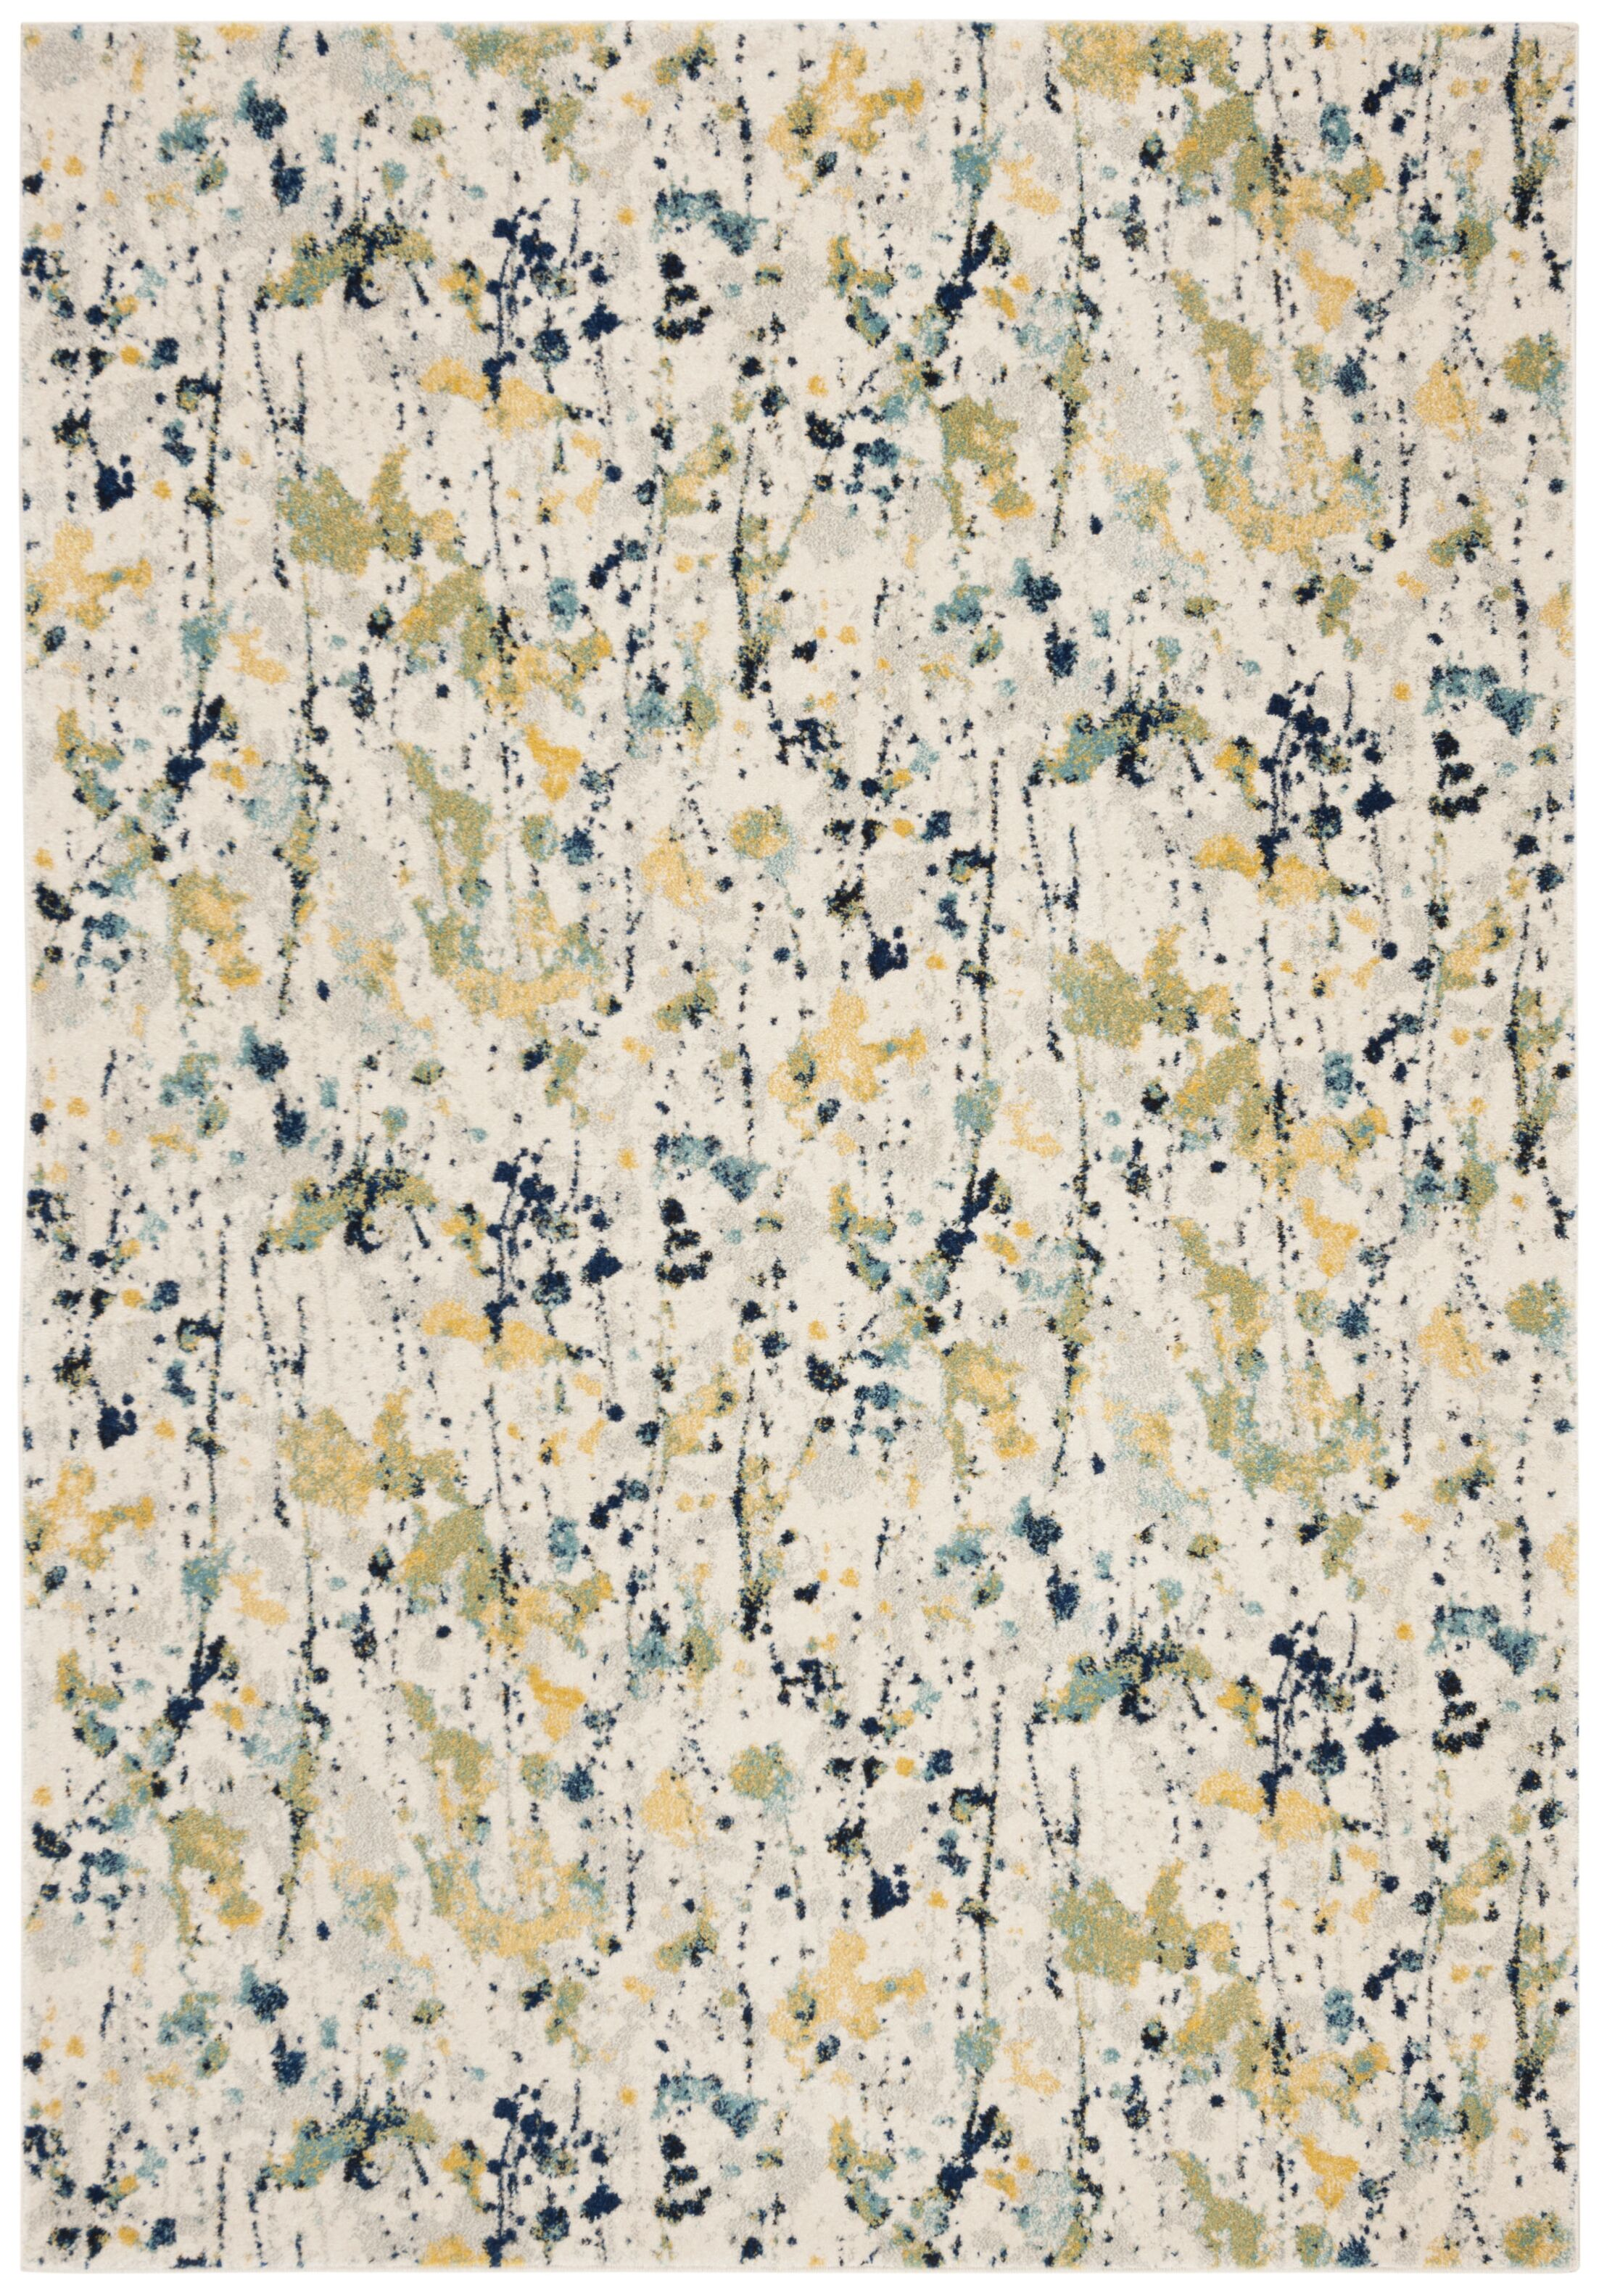 Gore Ivory/Yellow Area Rug Rug Size: Rectangle 9' x 12'